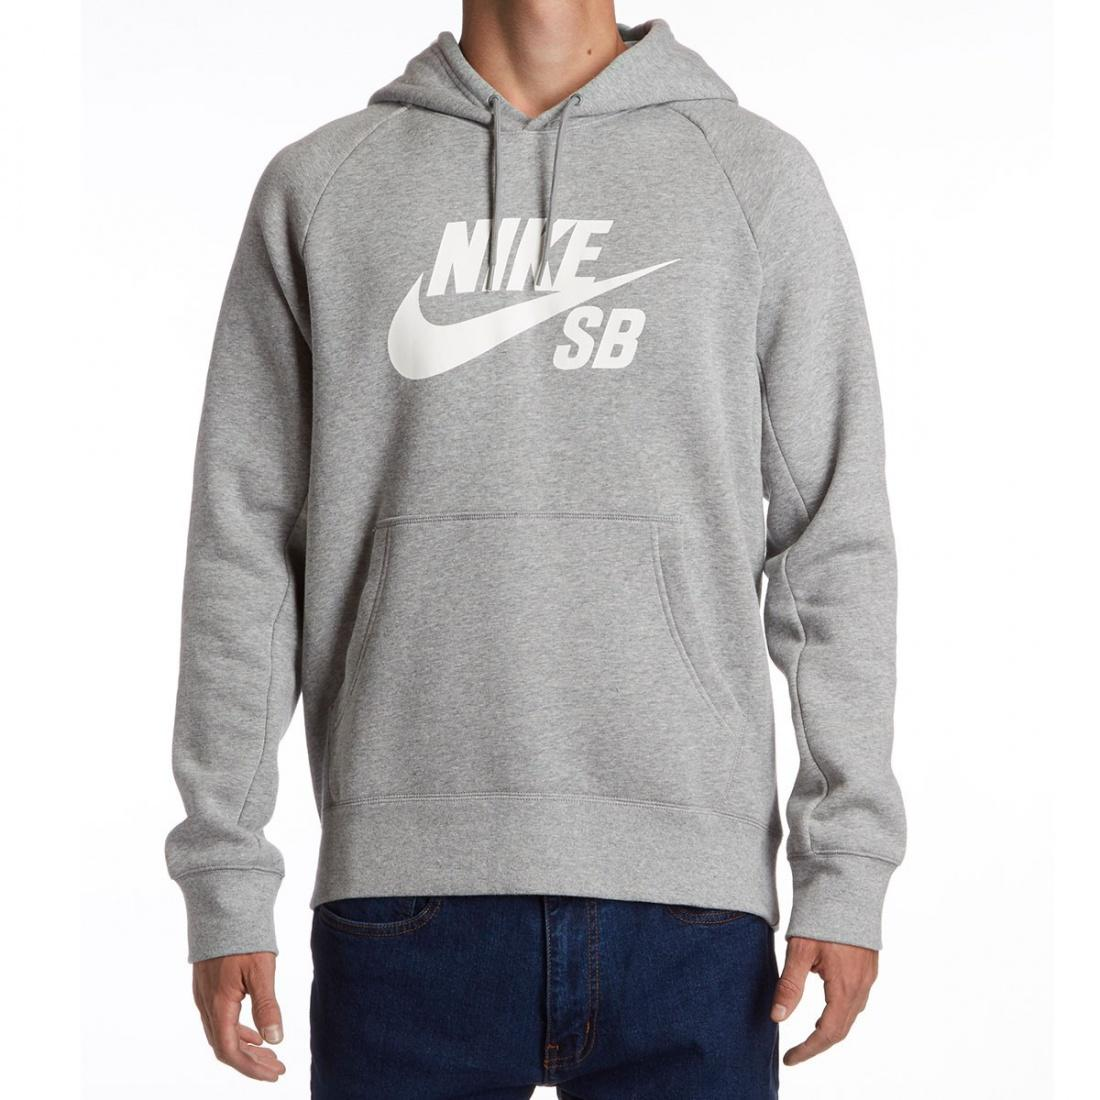 Nike SB Джемпер NIKE SB ICON PO HOODIE DK GREY HEATHER/WHITE L nike nike zoom kobe icon